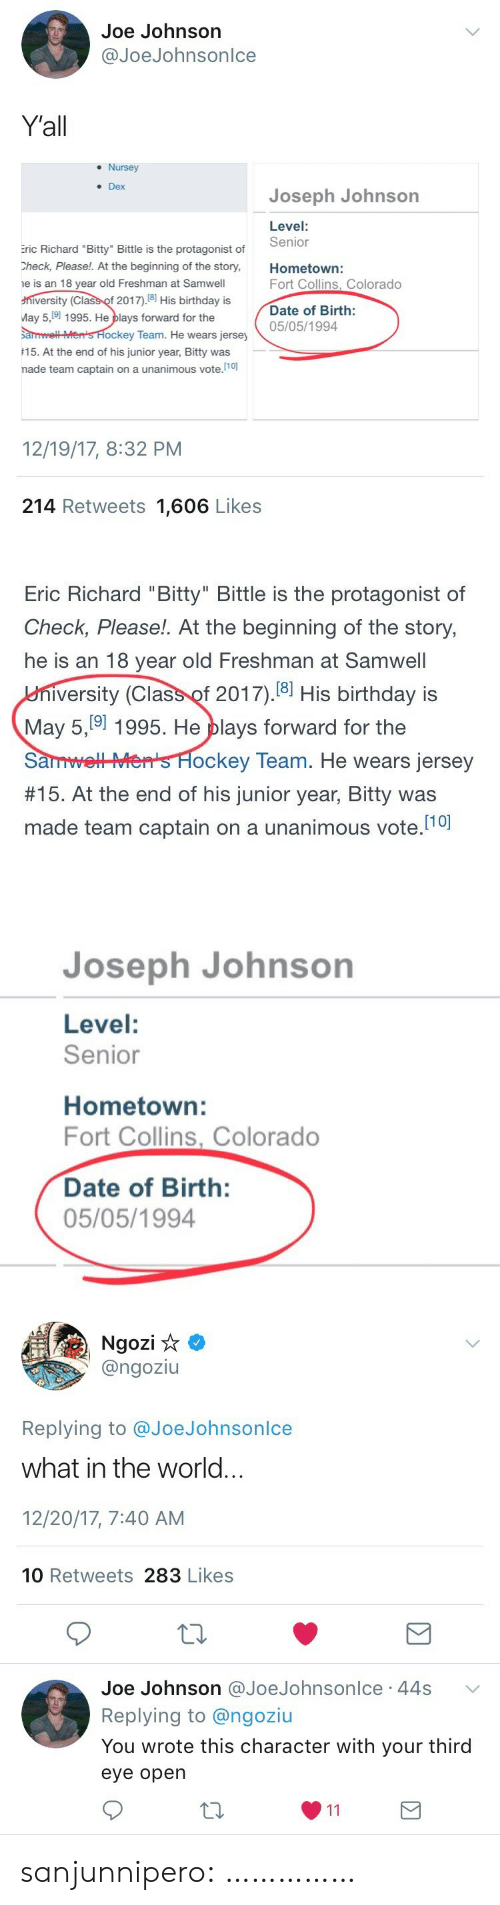 "May 5: Joe Johnson  @JoeJohnsonlce  Yall  . Nursey  Dex  Joseph Johnson  Level:  Senior  ric Richard ""Bitty"" Bittle is the protagonist of  Check, Please!. At the beginning of the story,Hometown:  e is an 18 year old Freshman at Samwell  niversity (Class of 2017).18 His birthday is  May 5,9 1995. He plays forward for the  arwell Men's Hockey Team. He we  15. At the end of his junior year, Bitty was  nade team captain on a unanimous vote.10)  Fort Collins, Colorado  Date of Birth:  05/05/1994  ars jersey  12/19/17, 8:32 PM  214 Retweets 1,606 Likes   Eric Richard ""Bitty"" Bittle is the protagonist of  Check, Please!. At the beginning of the story,  he is an 18 year old Freshman at Samwell  iversity (Class of 2017).18] His birthday is  May 5, 9] 1995. He plays forward for the  SanmLHS H  #15. At the end of his junior year, Bitty was  made team captain on a unanimous vote.10  ockey Team. He wears jersey   Joseph Johnson  Level:  Senior  Hometown:  Fort Collins, Colorado  Date of Birth:  05/05/1994   Ngozi  @ngoziu  Replying to @JoeJohnsonlce  what in the world.  12/20/17, 7:40 AM  10 Retweets 283 Likes  Joe Johnson @JoeJohnsonlce 44s  Replying to @ngoziu  You wrote this character with your third  eye opern sanjunnipero: ……………"